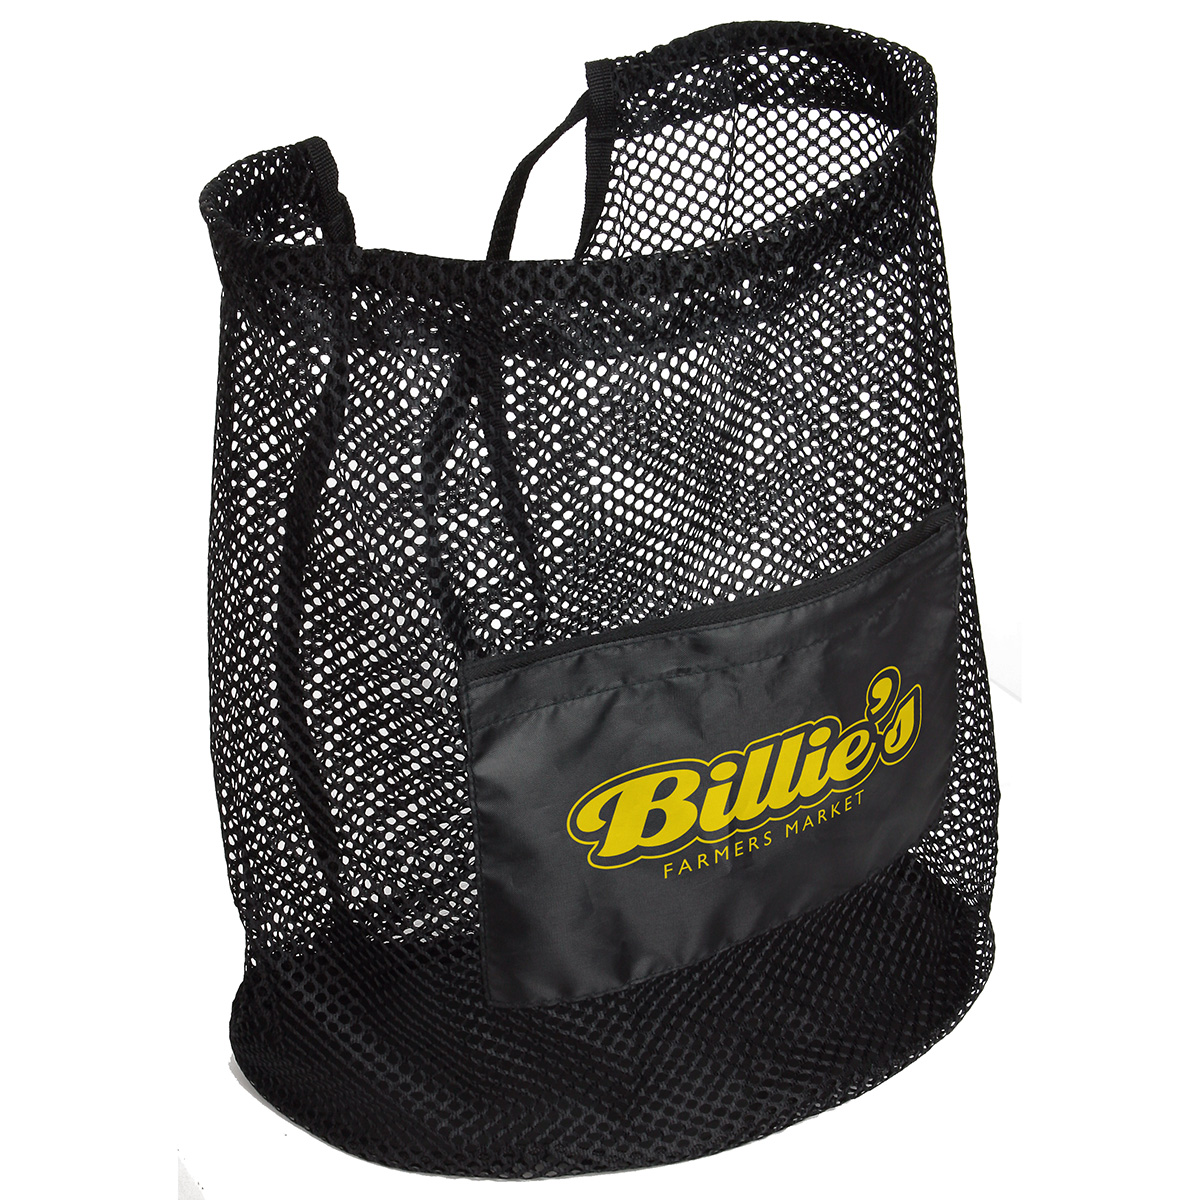 Flex Mesh Drawstring Bag, WBA-FM11, 1 Colour Imprint